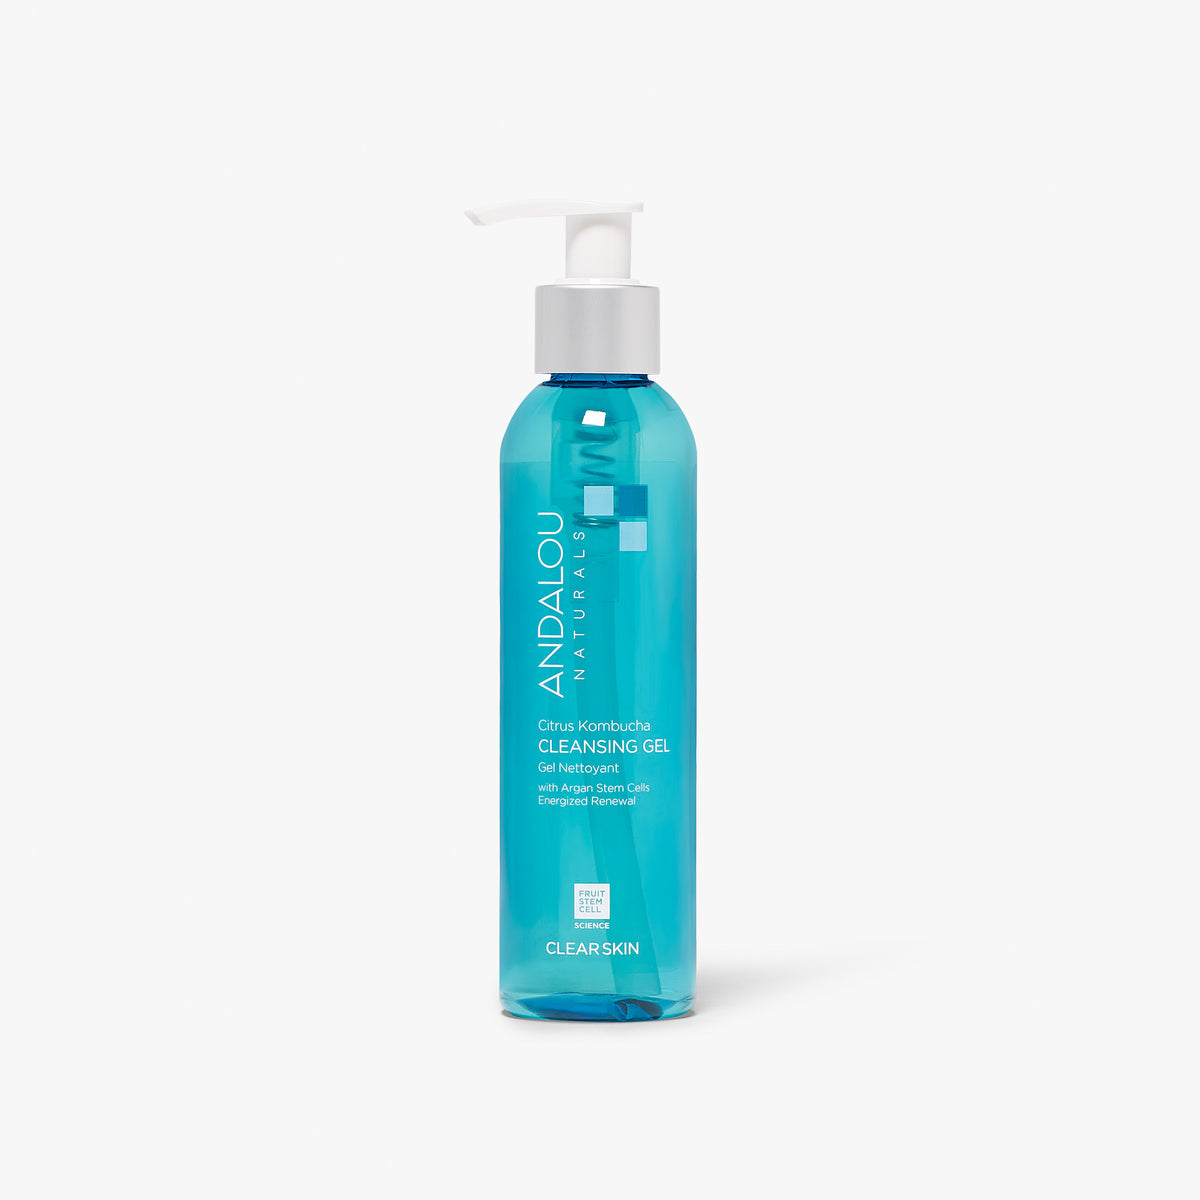 Clear Skin Citrus Kombucha Cleansing Gel